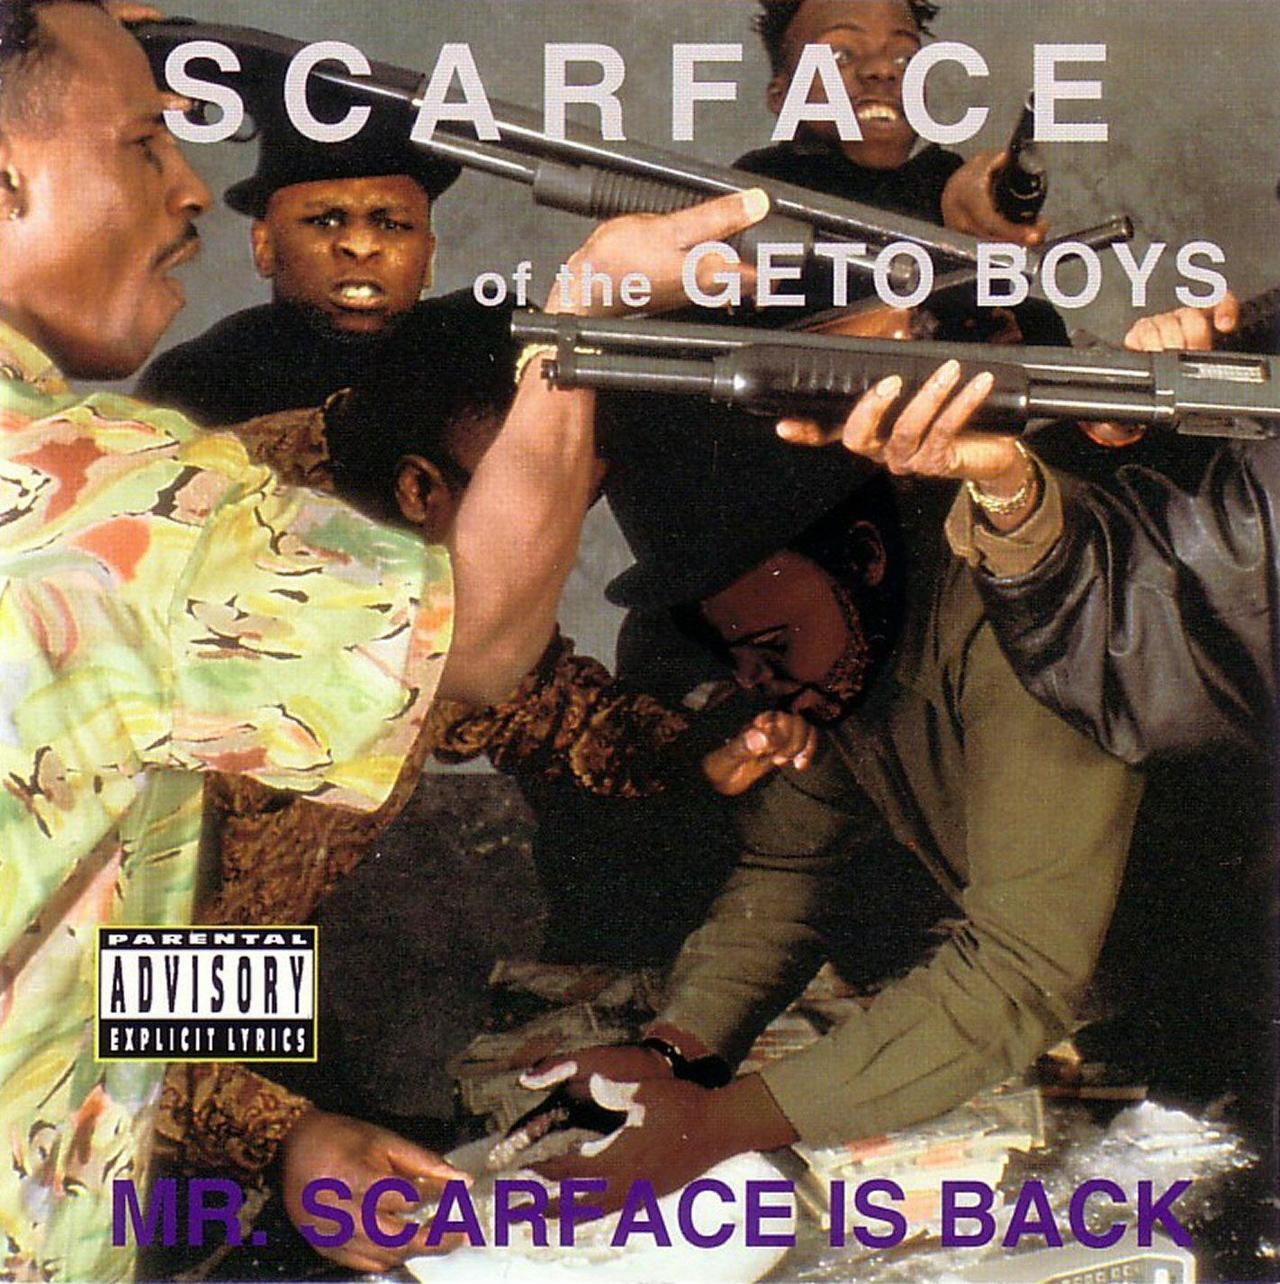 BACK IN THE DAY |10/3/91| Scarface releases his debut solo album, Mr. Scarface Is Back, on Rap-a-Lot Records.